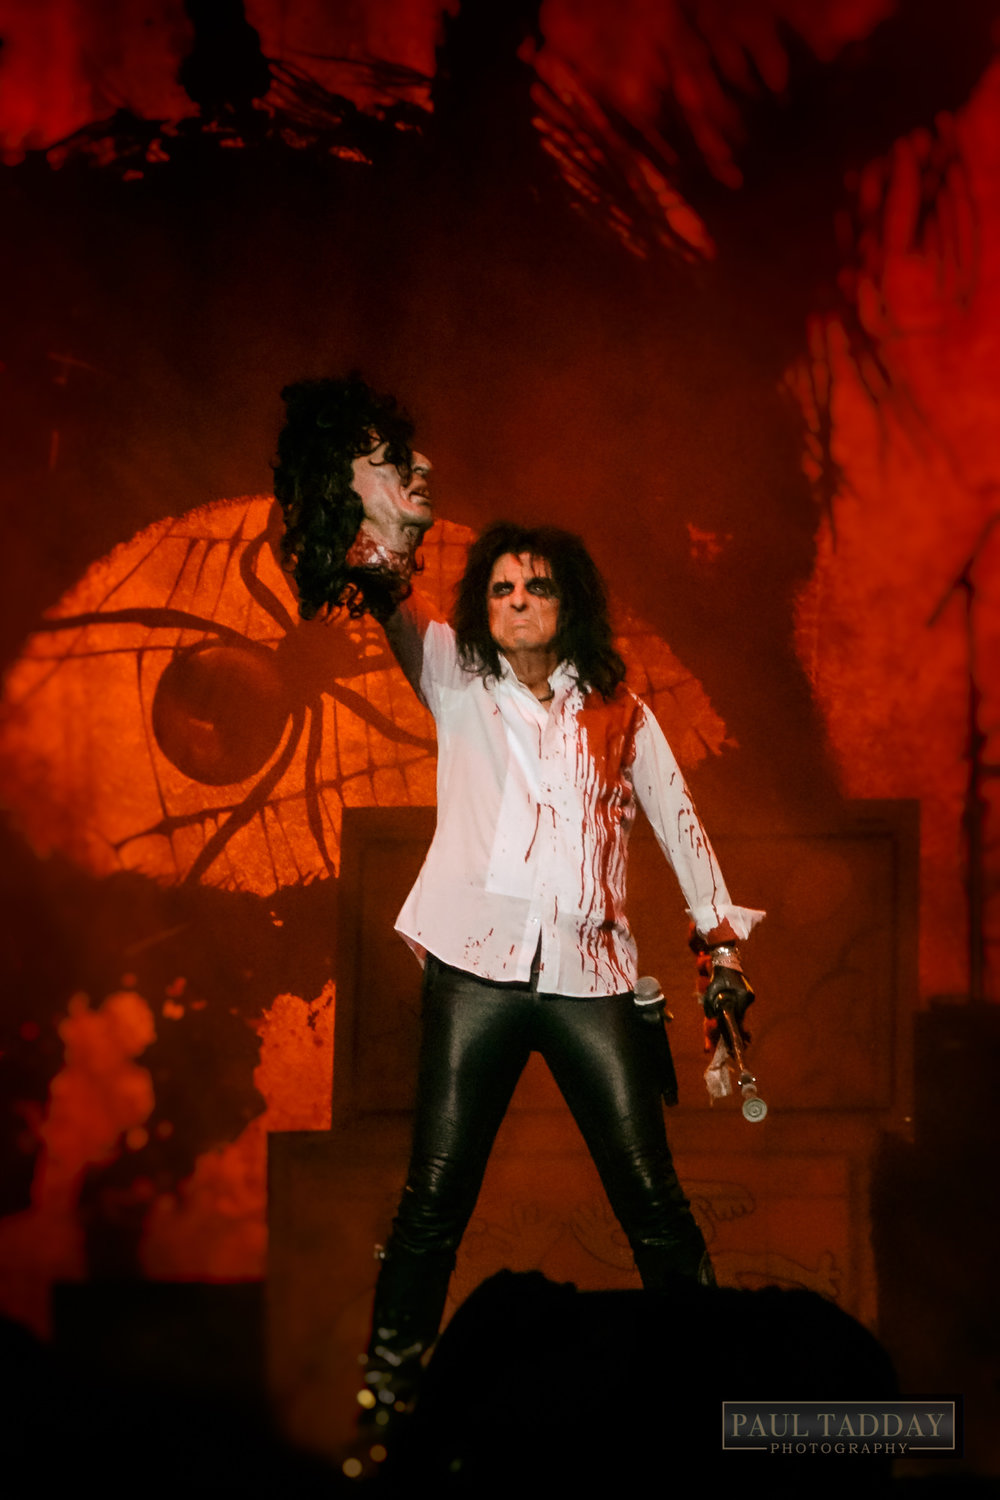 alice cooper - melbourne - paul tadday photography - 201017 - 48.jpg